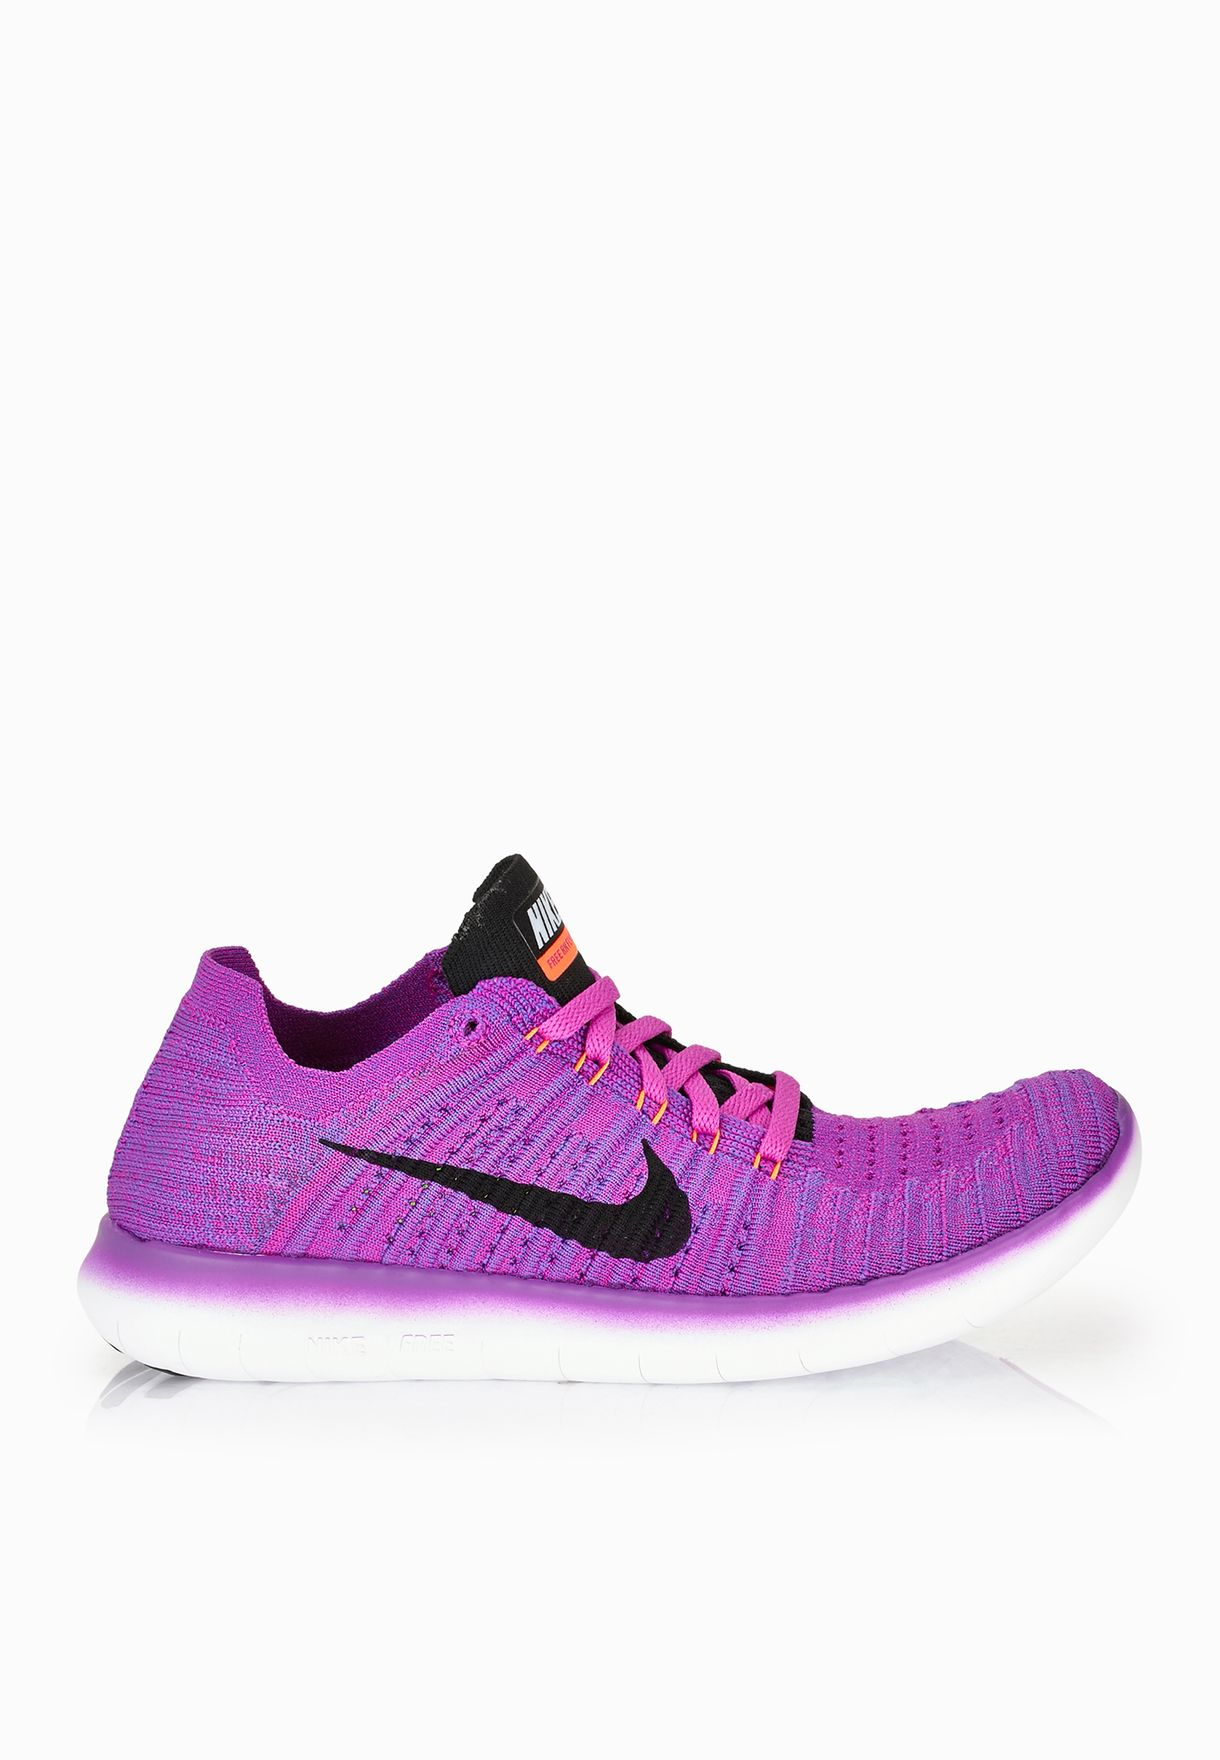 6ca3741e688e Shop Nike purple Free Run Flyknit 831070-501 for Women in UAE ...